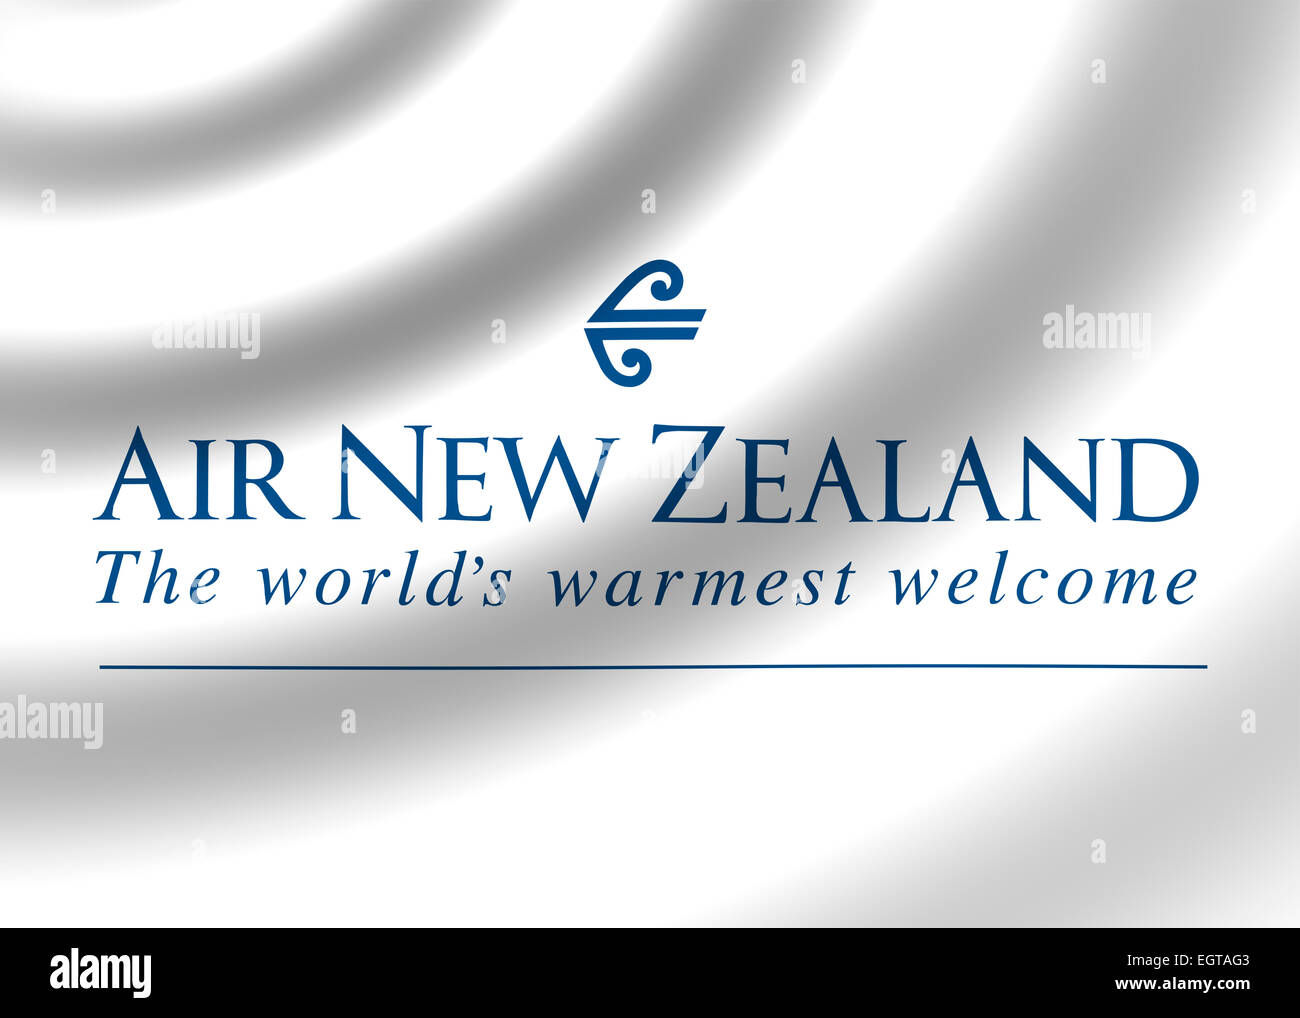 Air New Zealand LTD logo symbol icon flag emblem - Stock Image